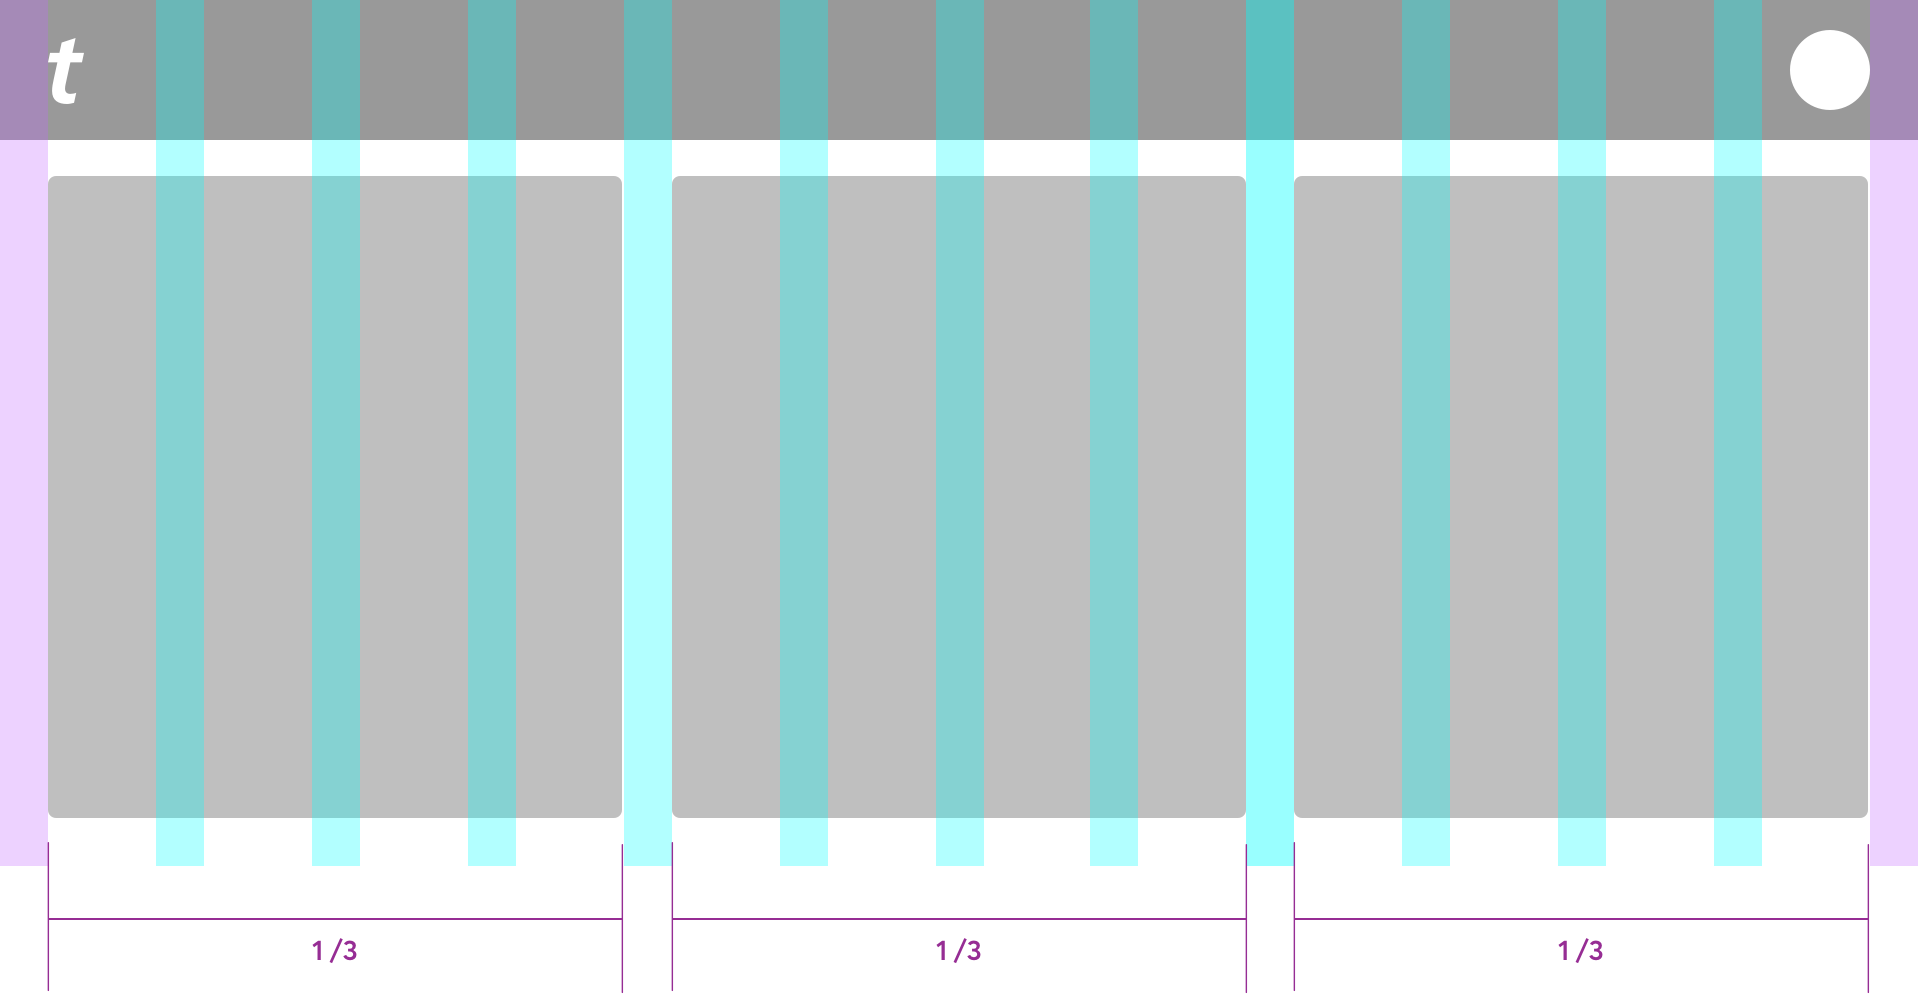 Equal Sized Columns image